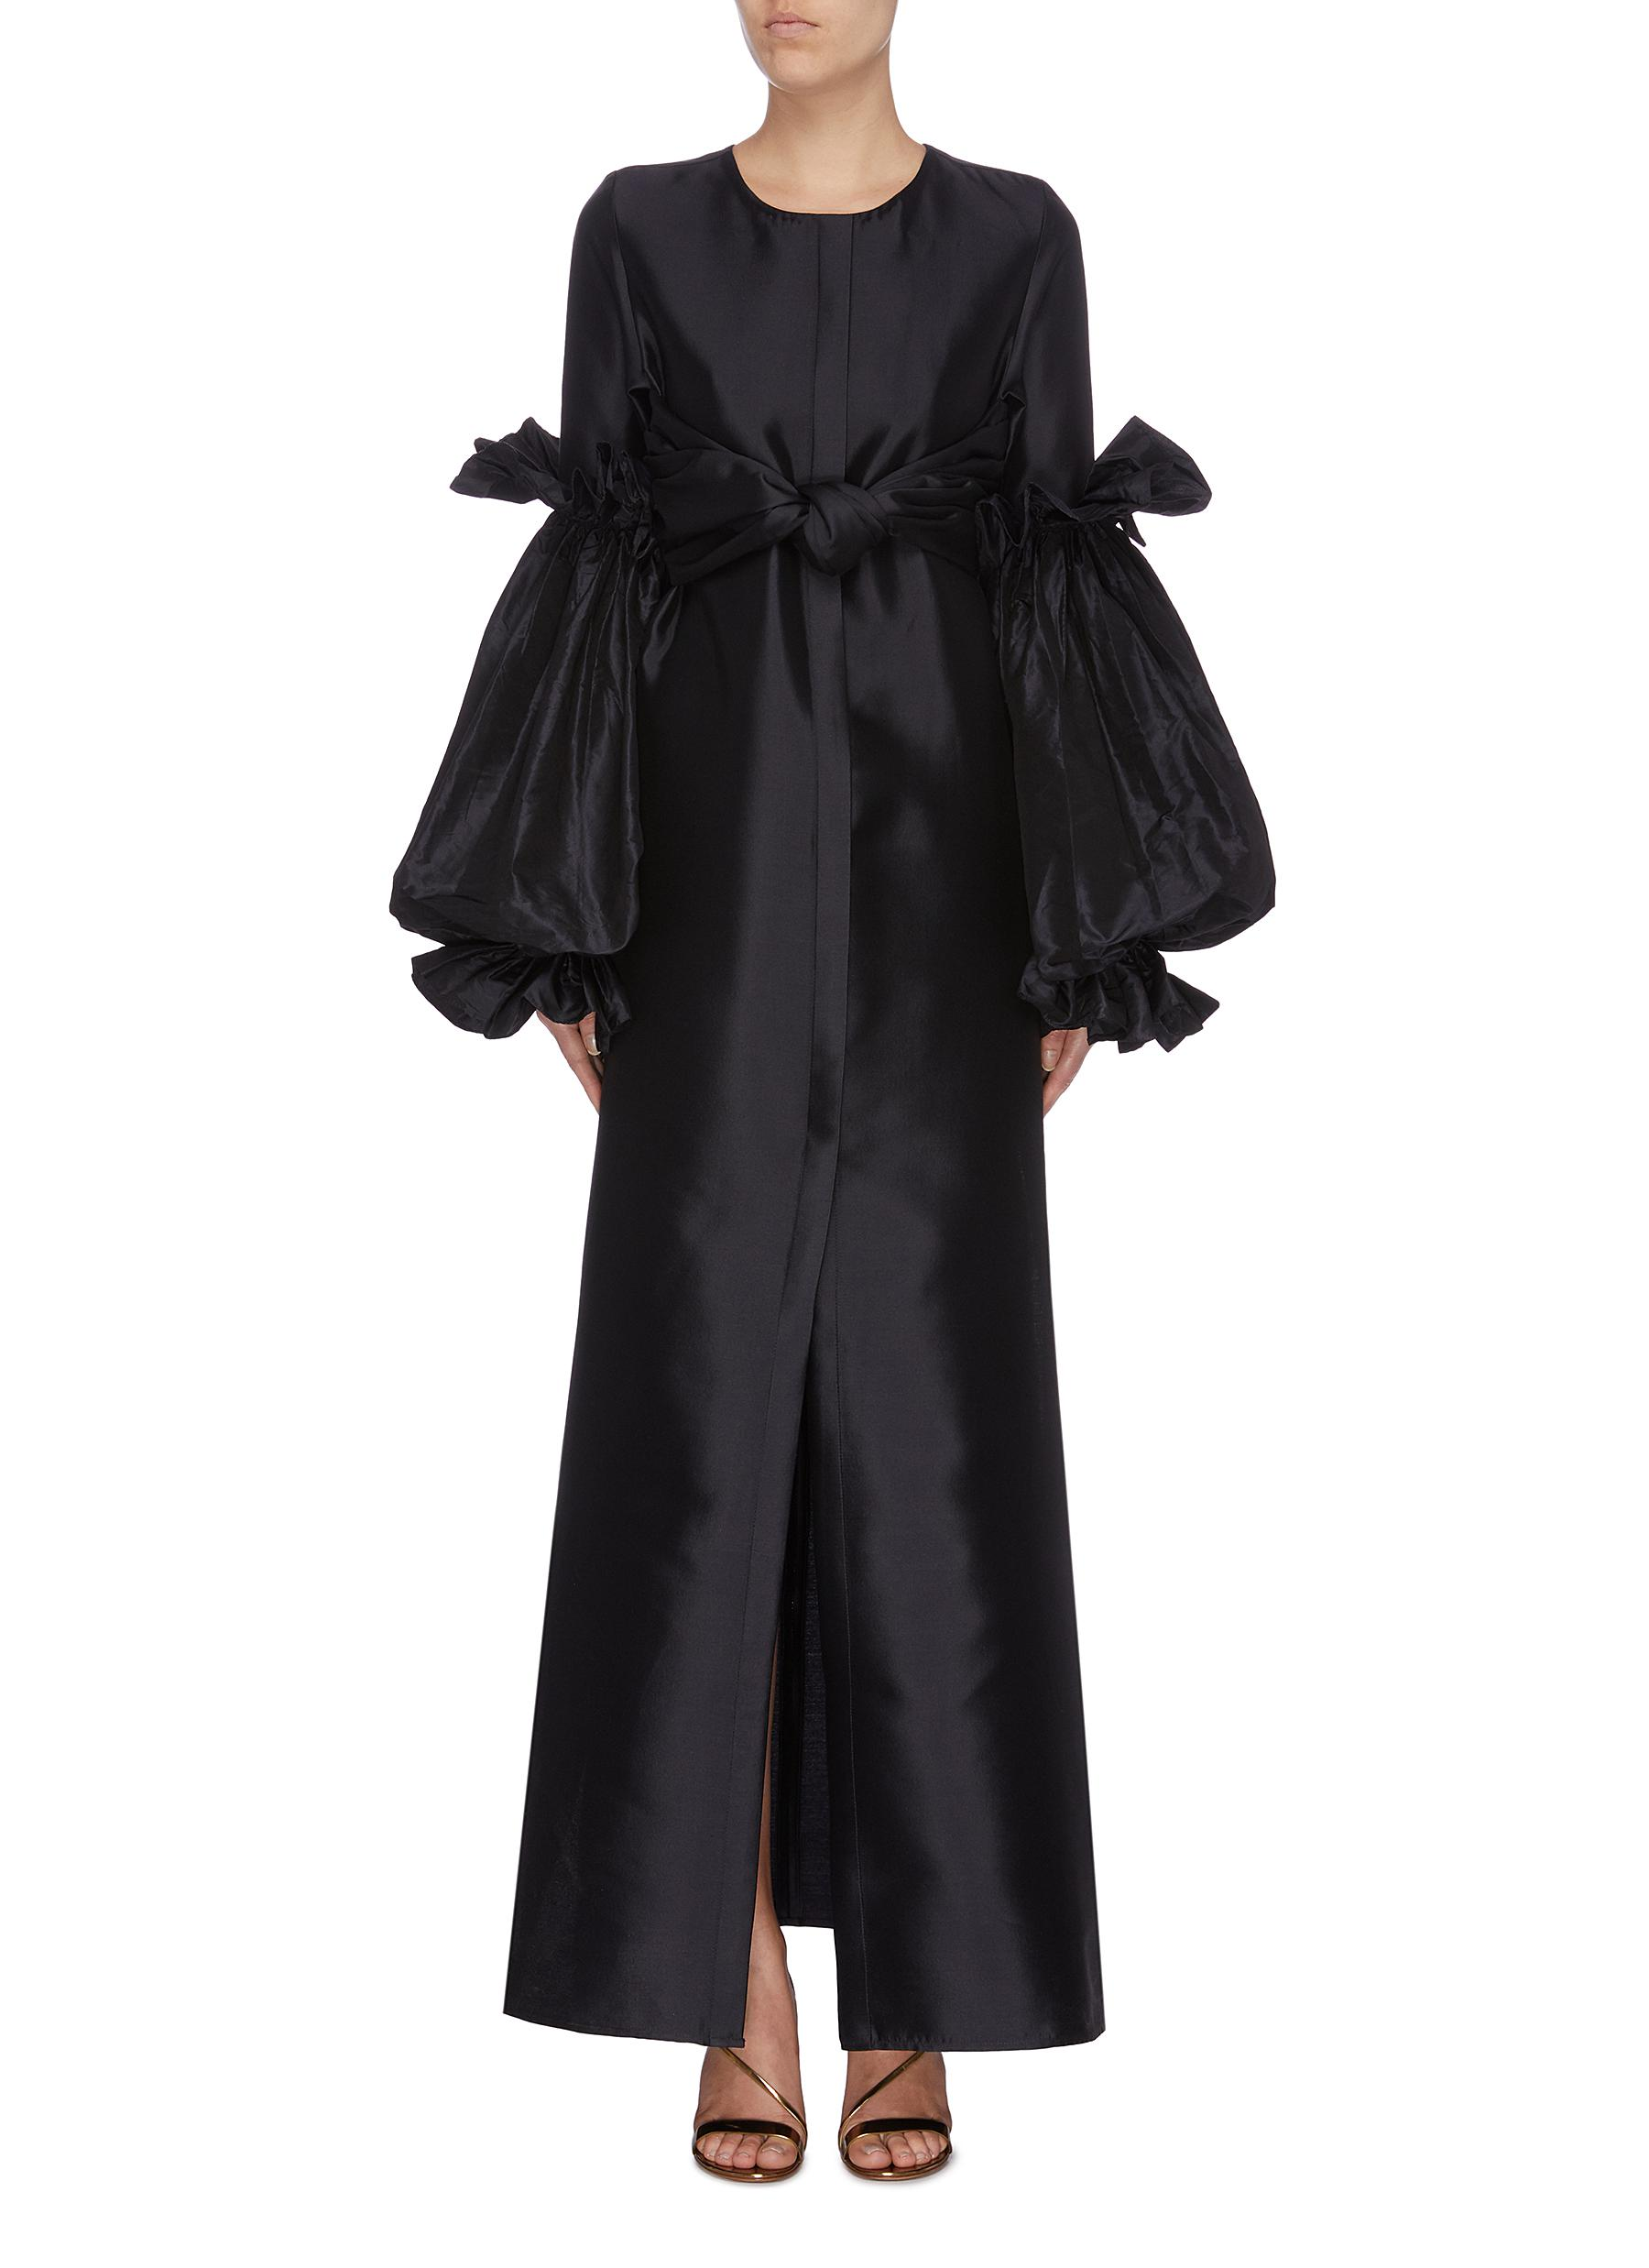 Ninfa tiered balloon sleeve bow front satin dress by Leal Daccarett